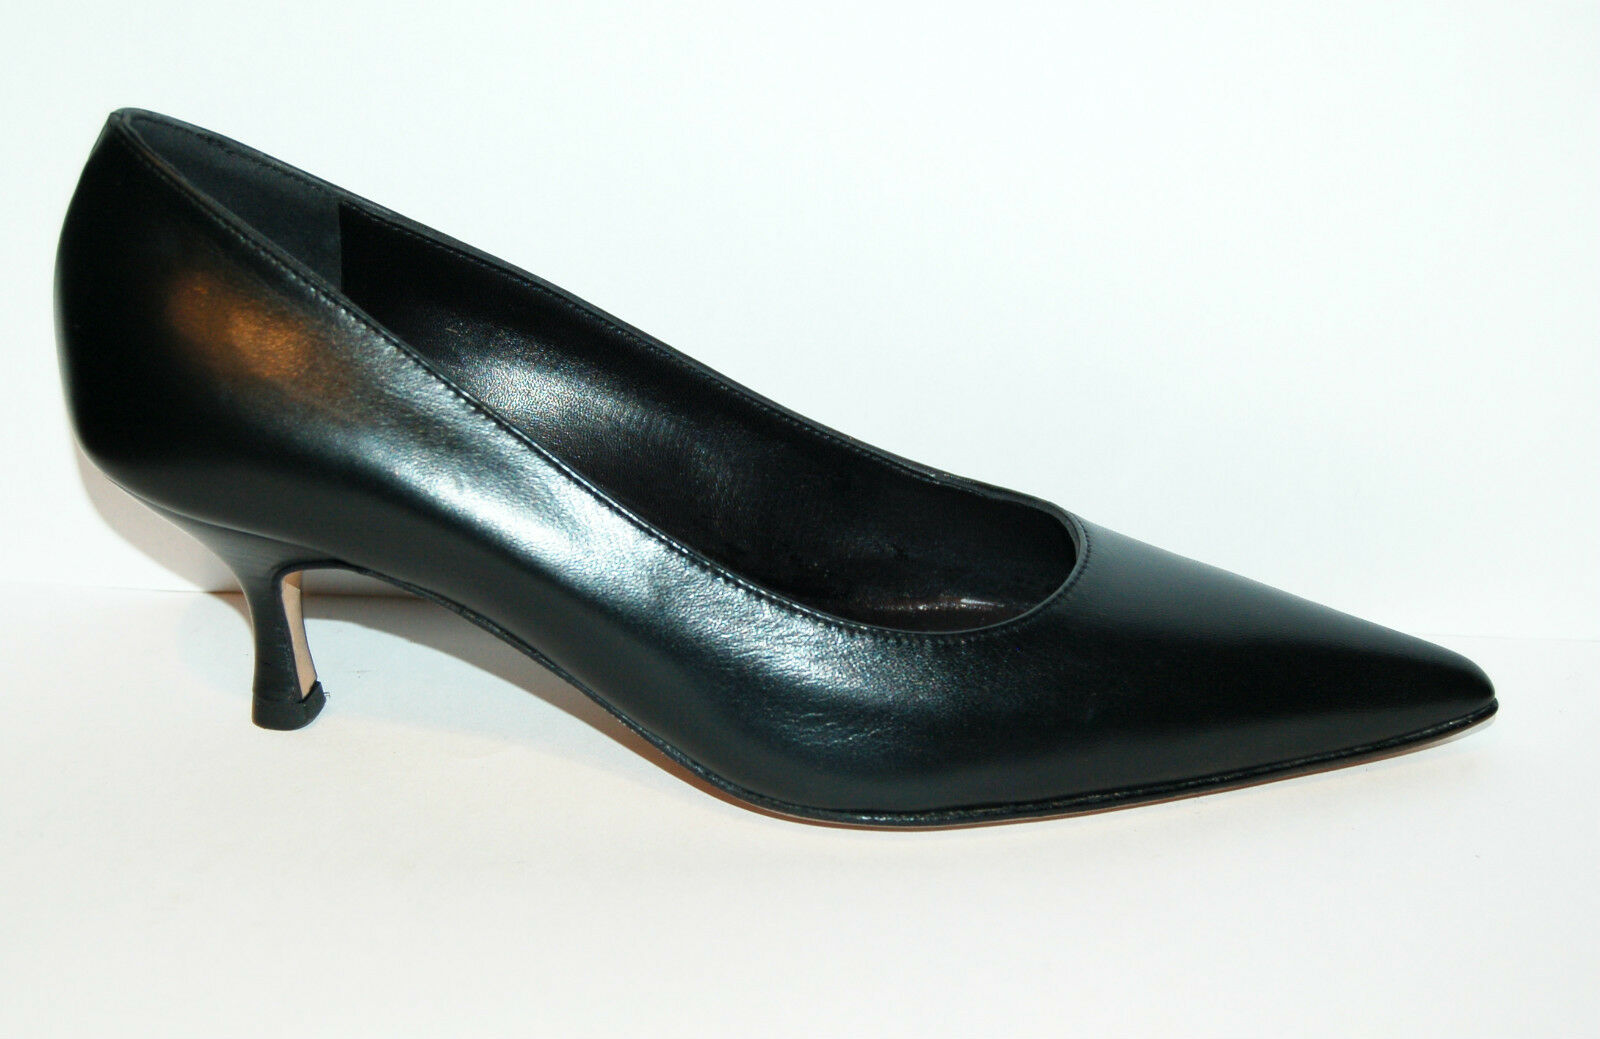 36eu - WOMAN POINTED PUMP - BLACK CALF - LEATHER SOLE - HEEL 5,5cm